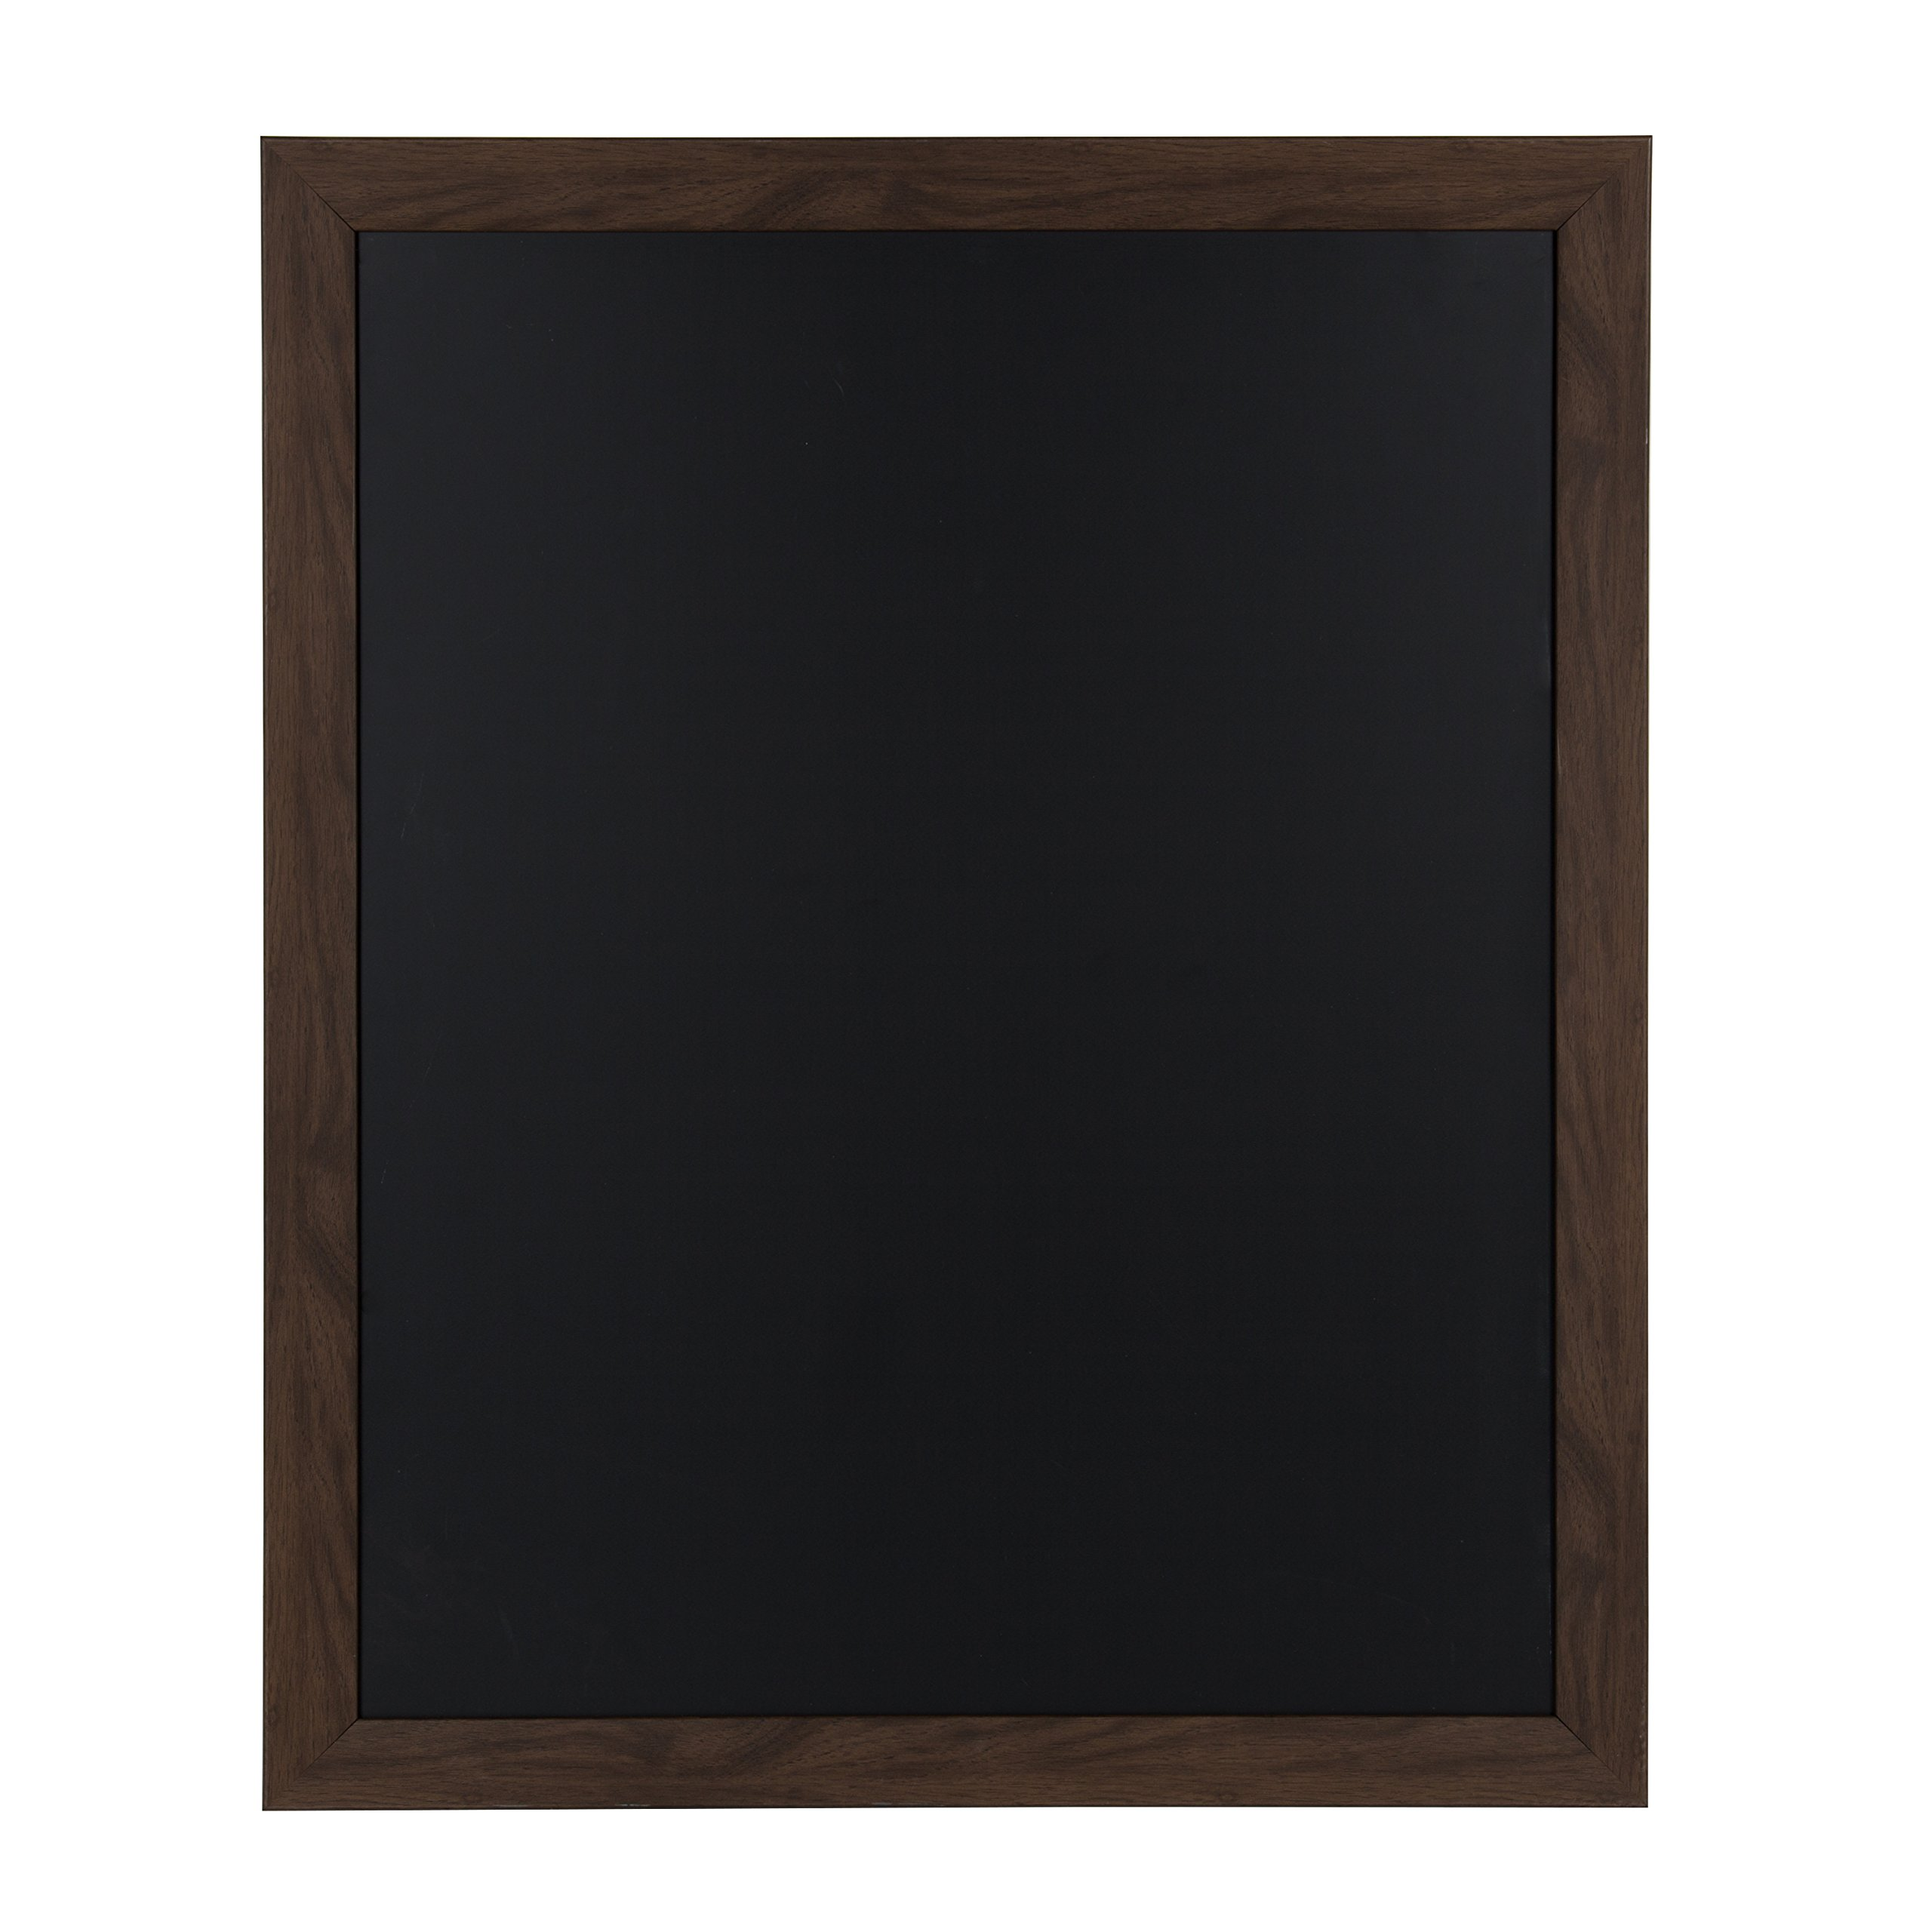 DesignOvation Beatrice Framed Magnetic Chalkboard, 27x33, Walnut Brown by DesignOvation